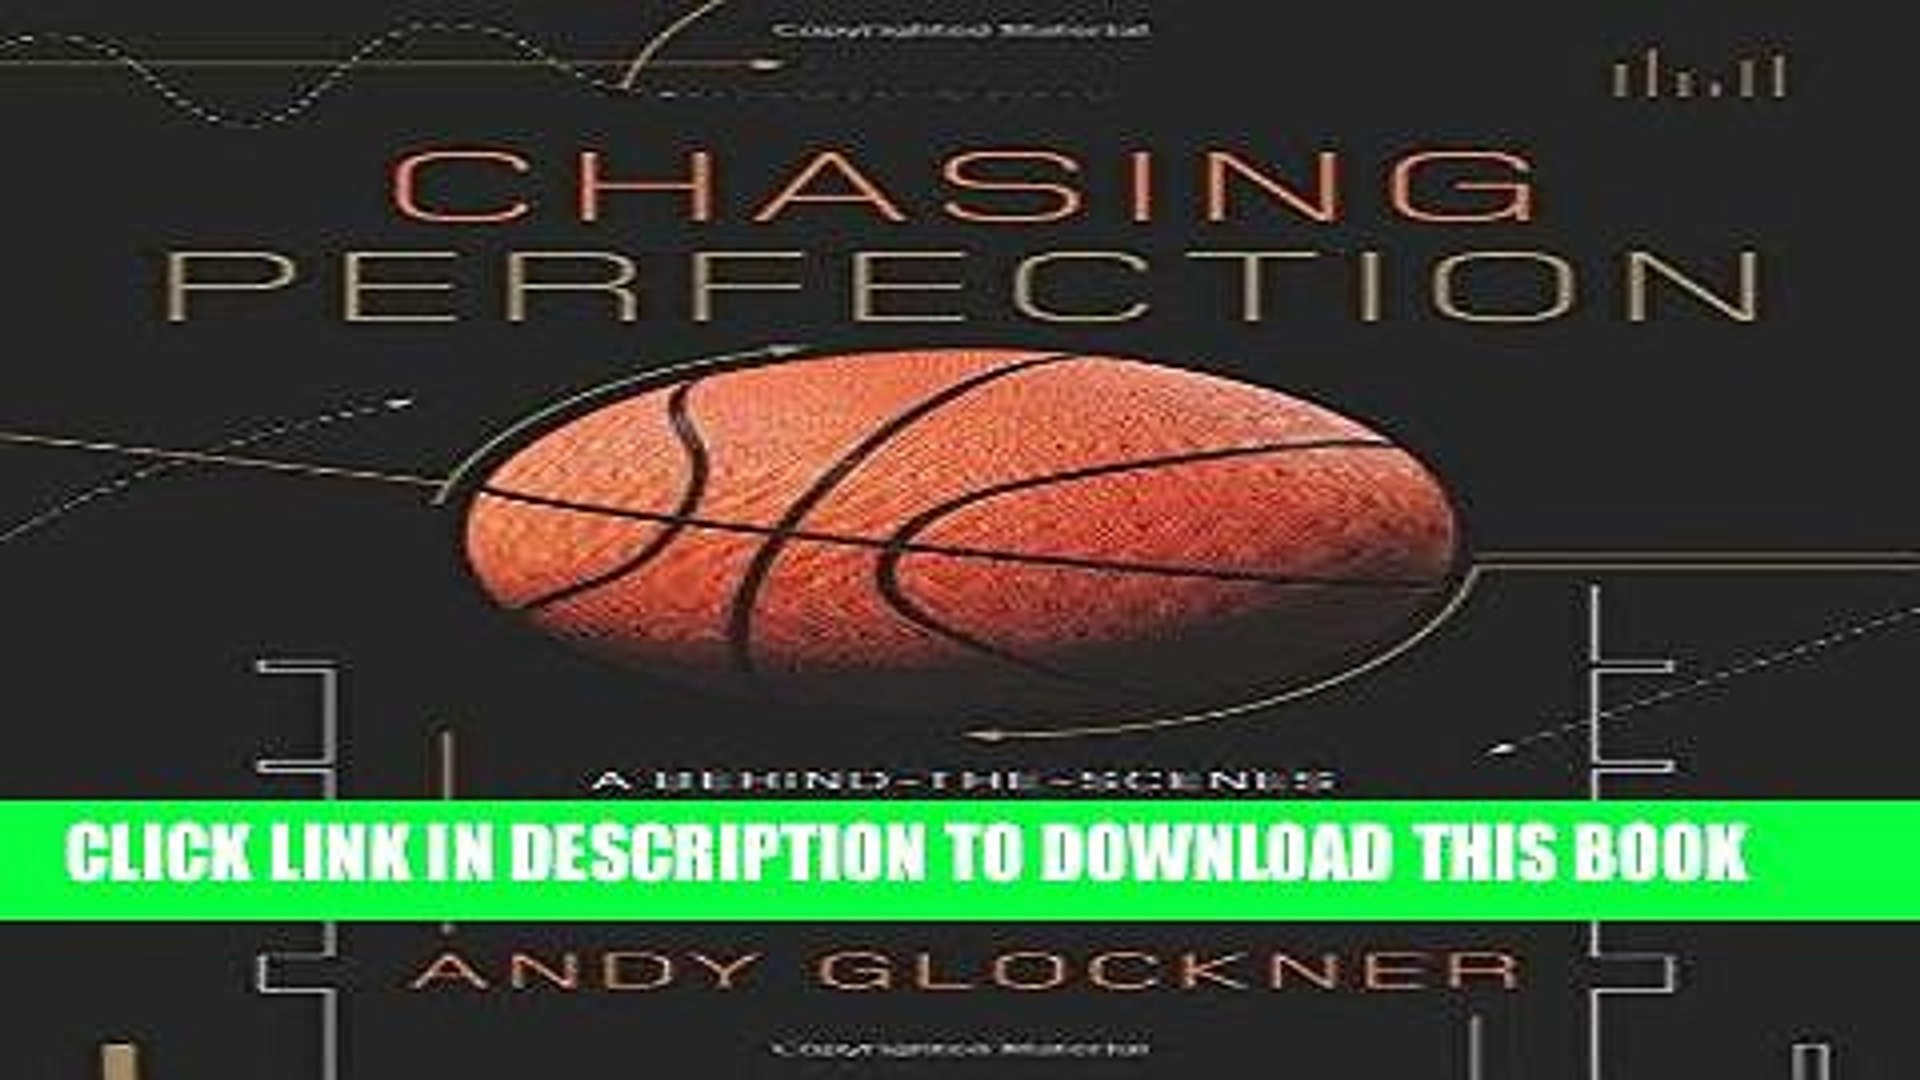 Ebook Chasing Perfection: A Behind-the-Scenes Look at the High-Stakes Game of Creating an NBA